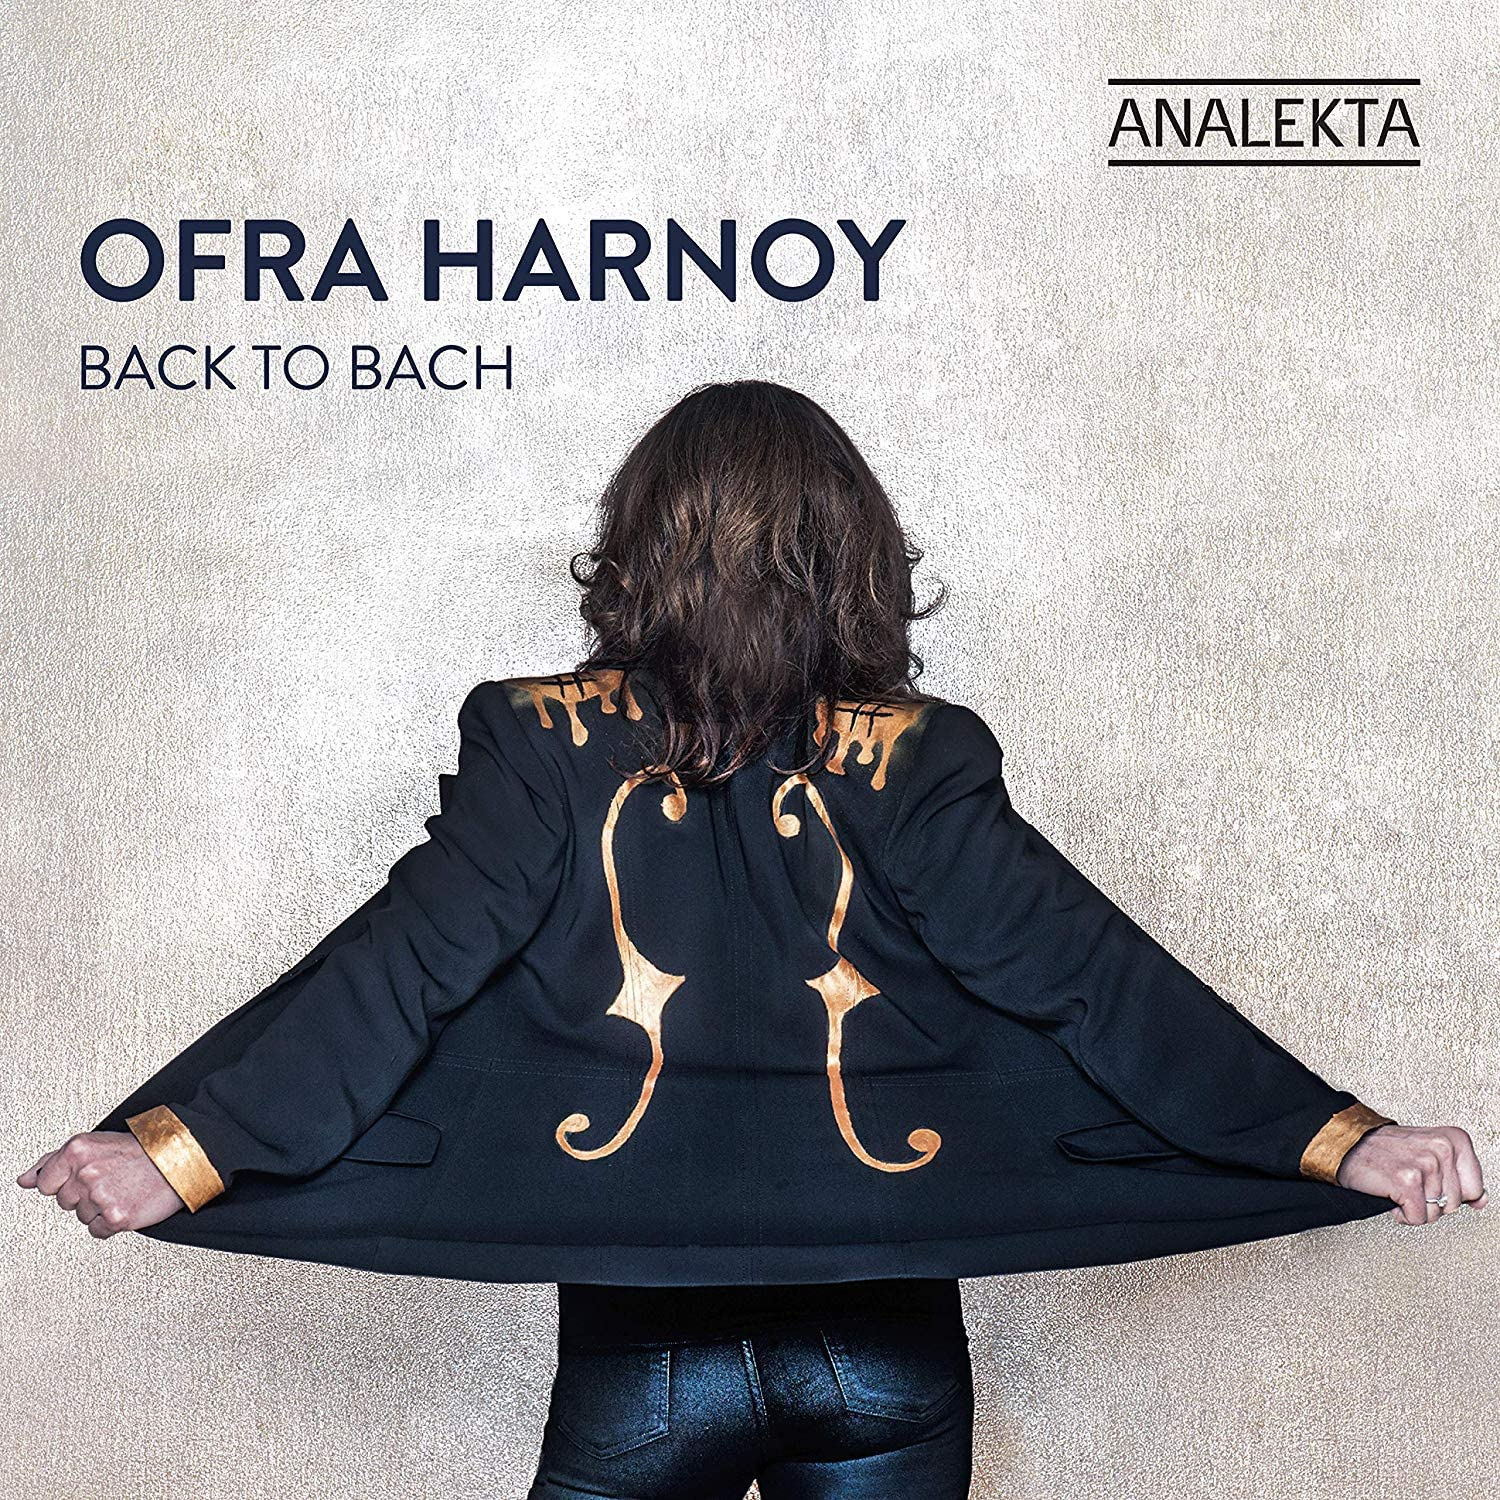 Back to Bach with Ofra Harnoy